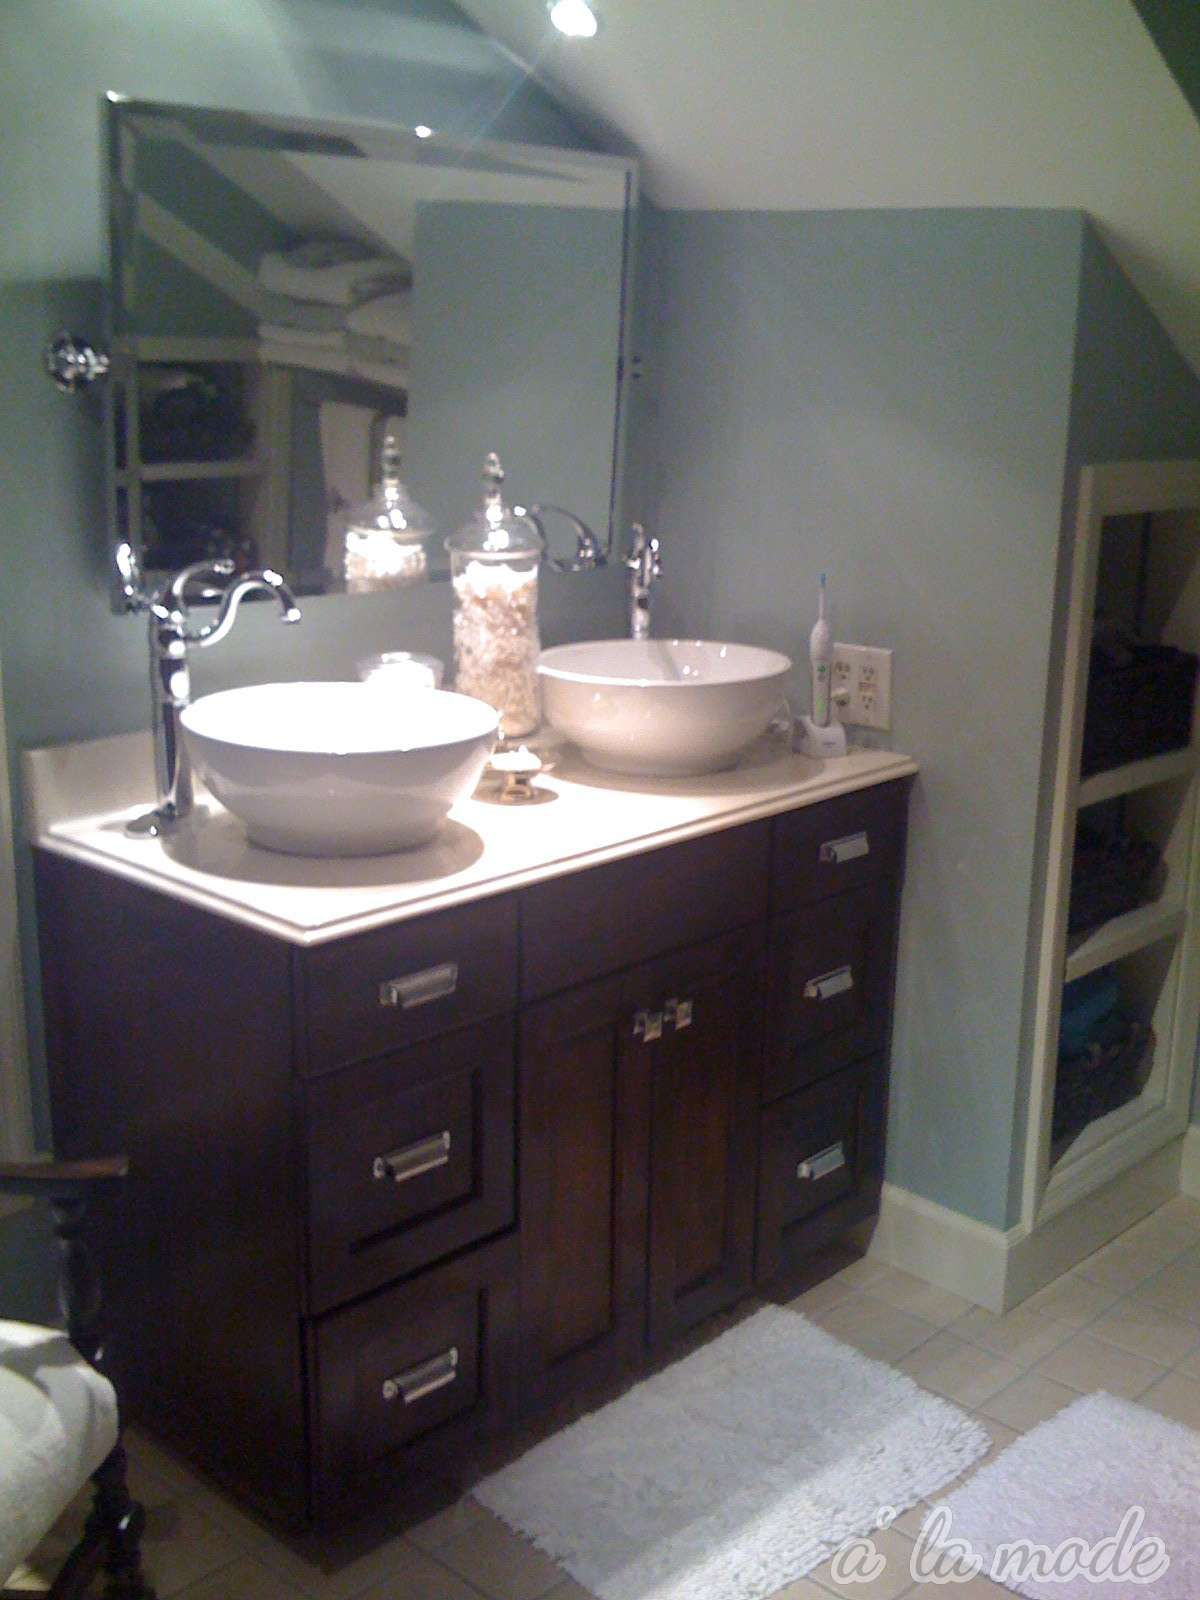 Favored White Like Porcelain Glass Vanity Top With 2 Bowl Sink And ...